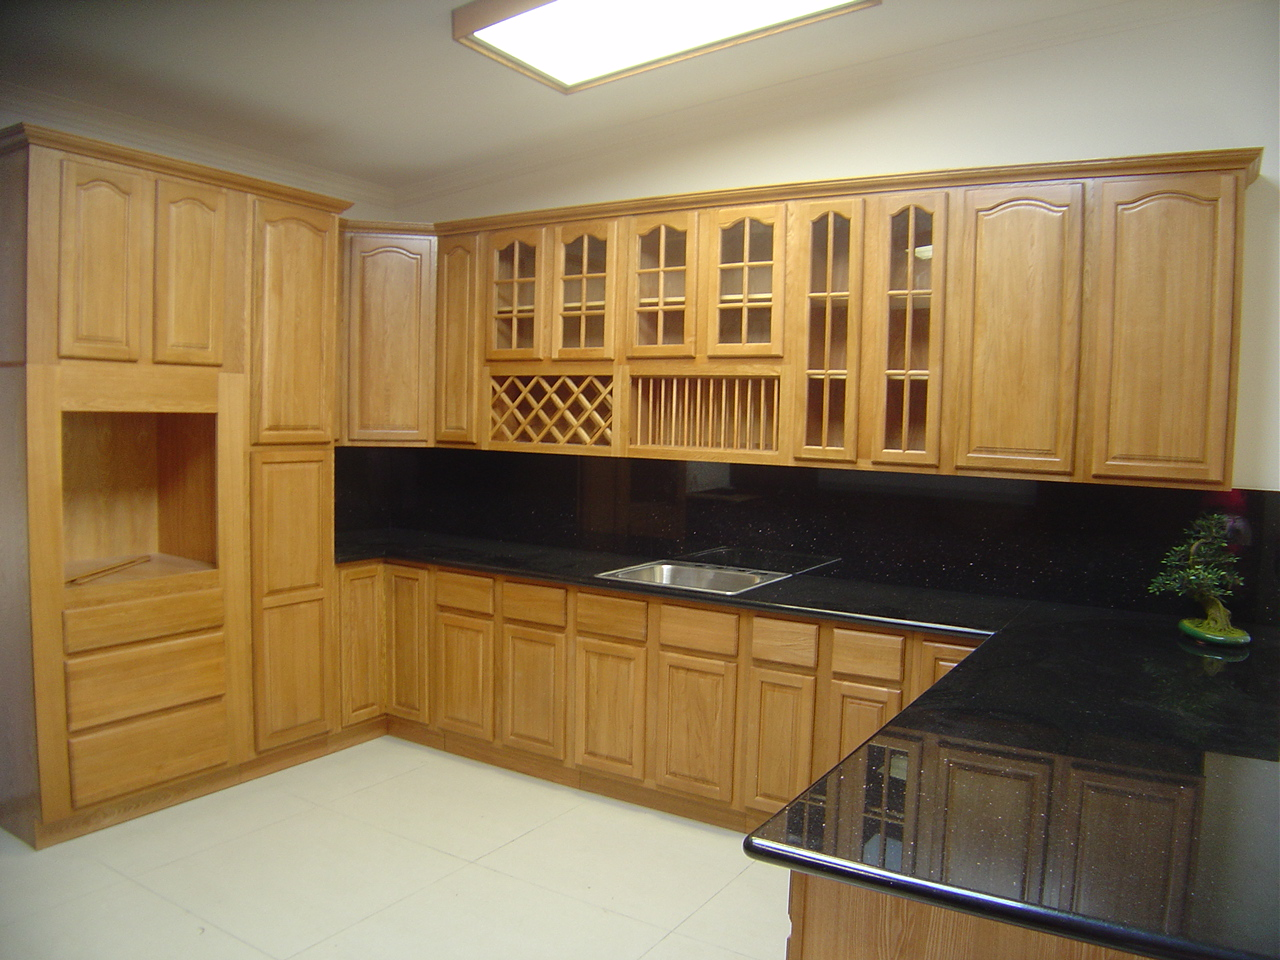 Decorating Ideas For Kitchen Cabinets Special Kitchen Cabinet Design And Decor Design Interior